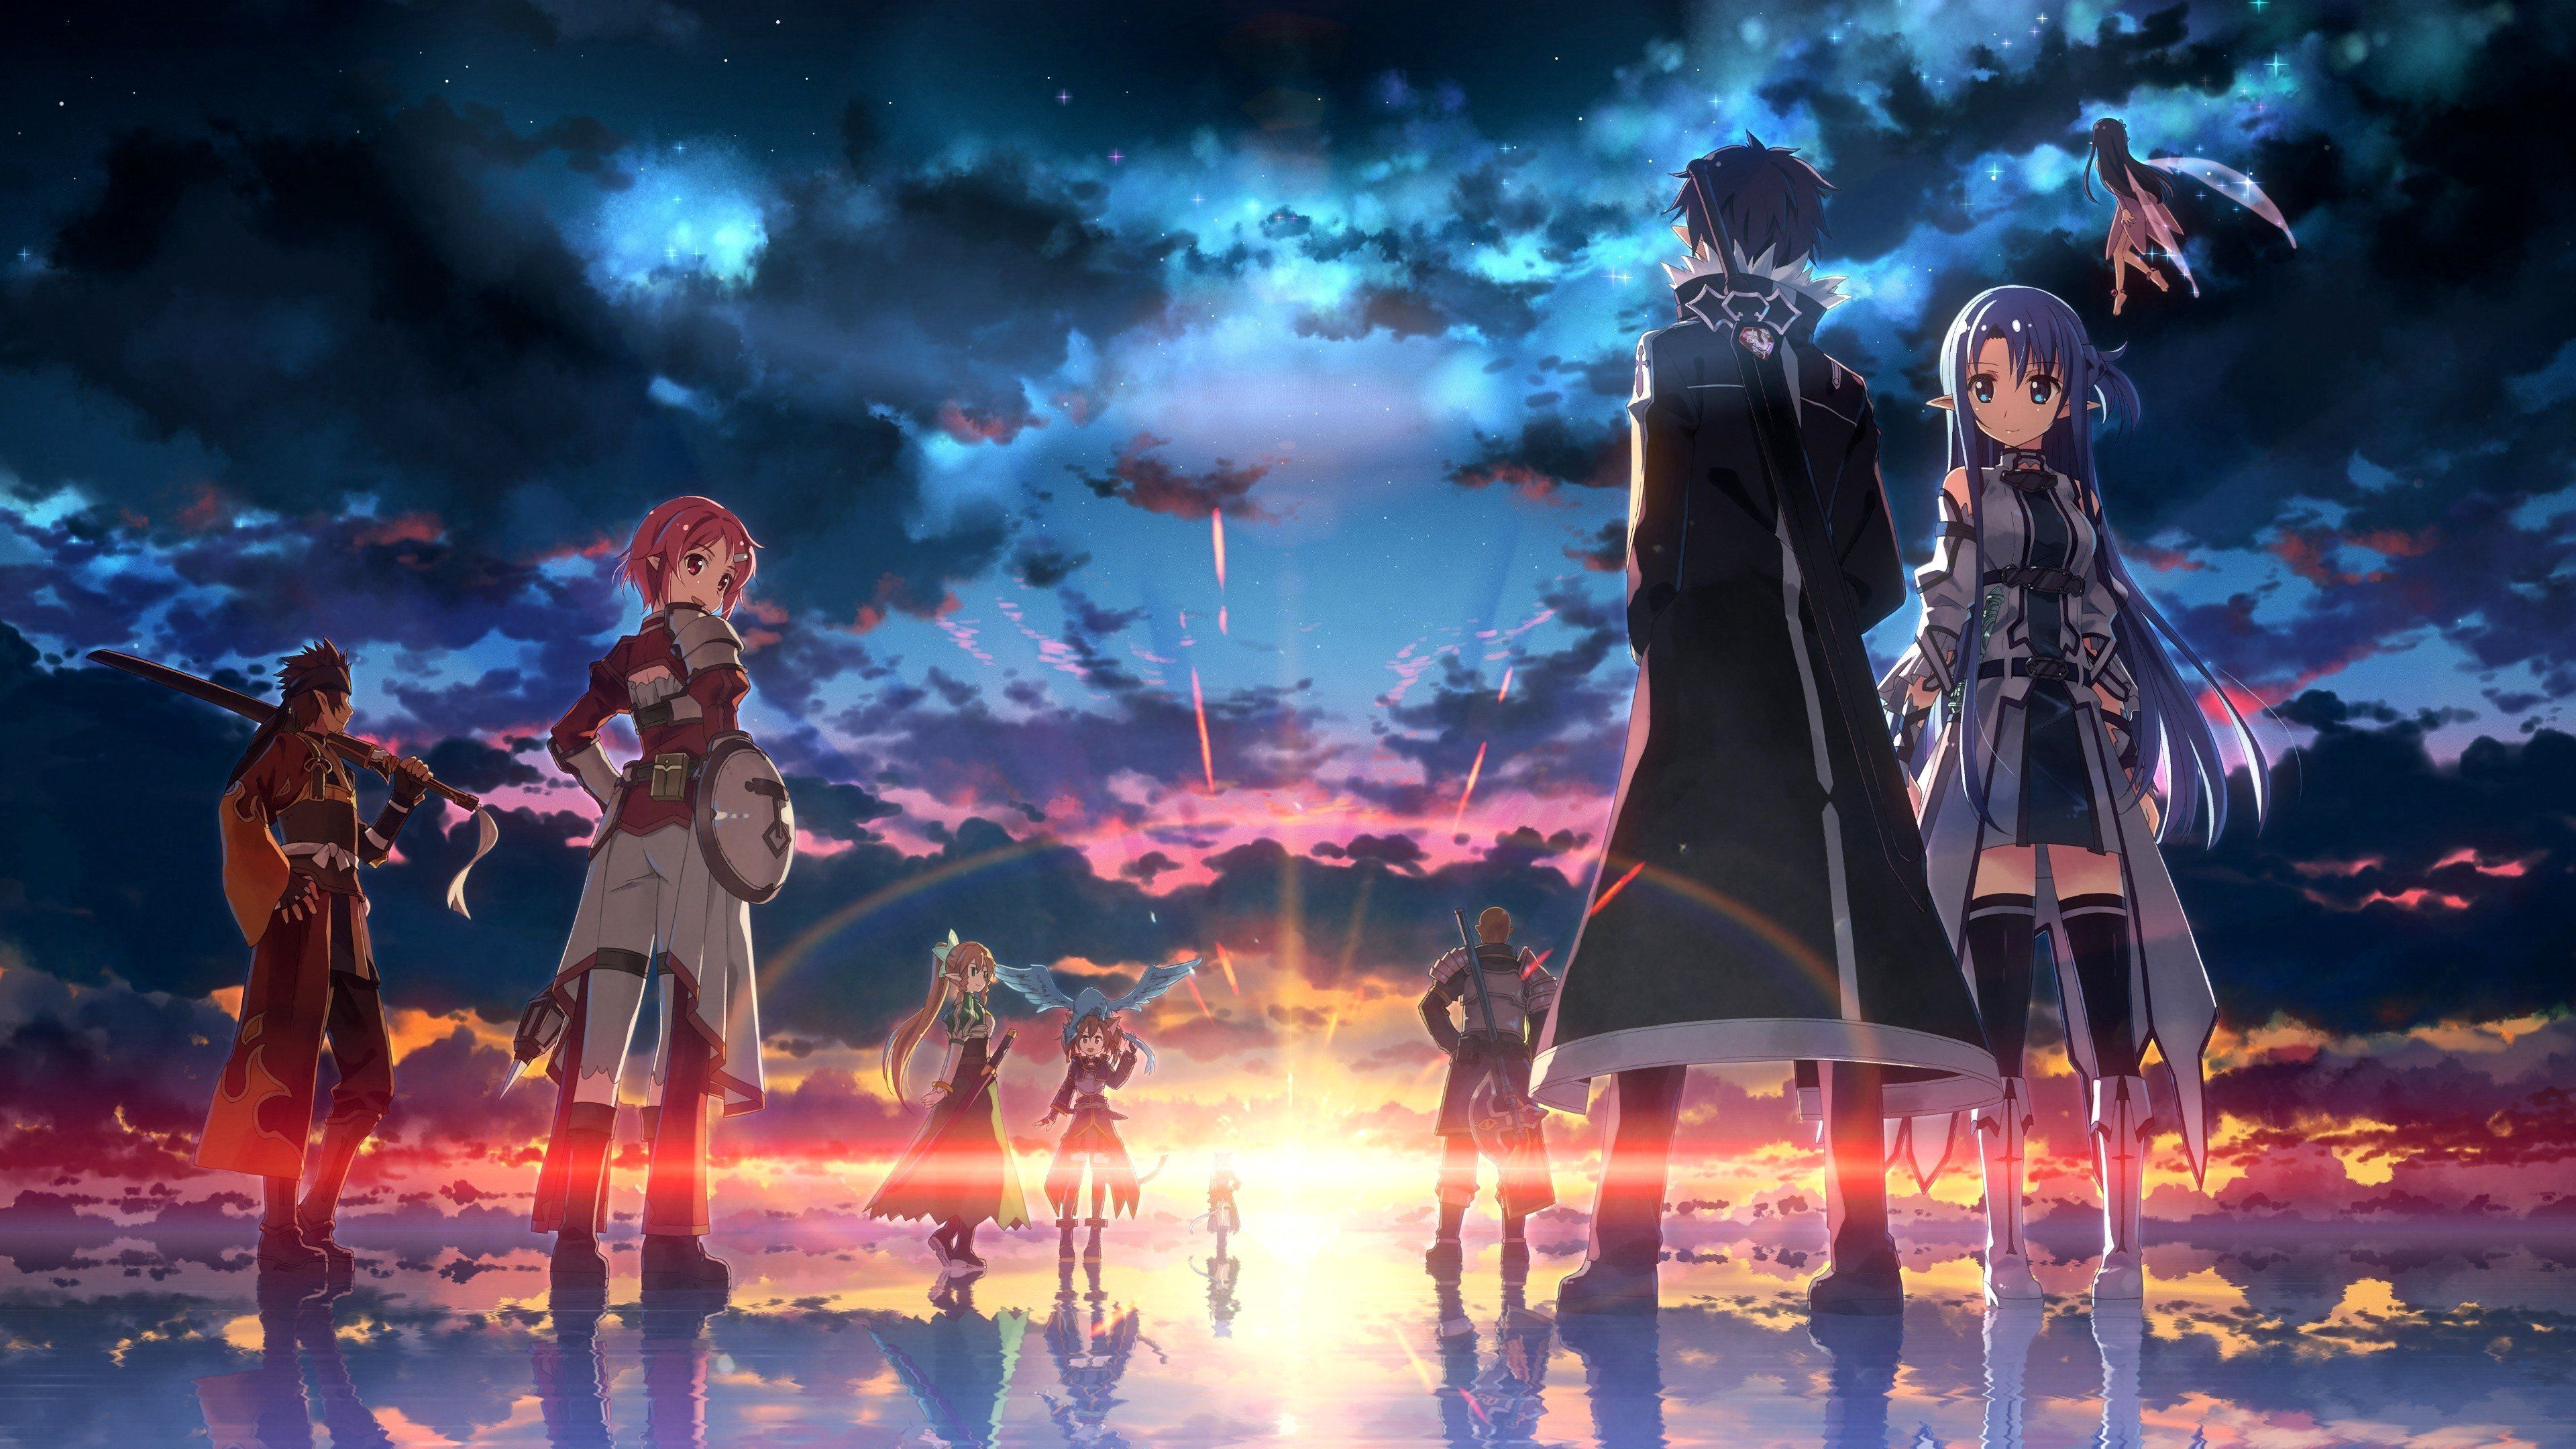 Sword Art Online Wallpaper 4k Pc Ideas Wallpaper In 2020 Sword Art Online Wallpaper Sword Art Sword Art Online Poster